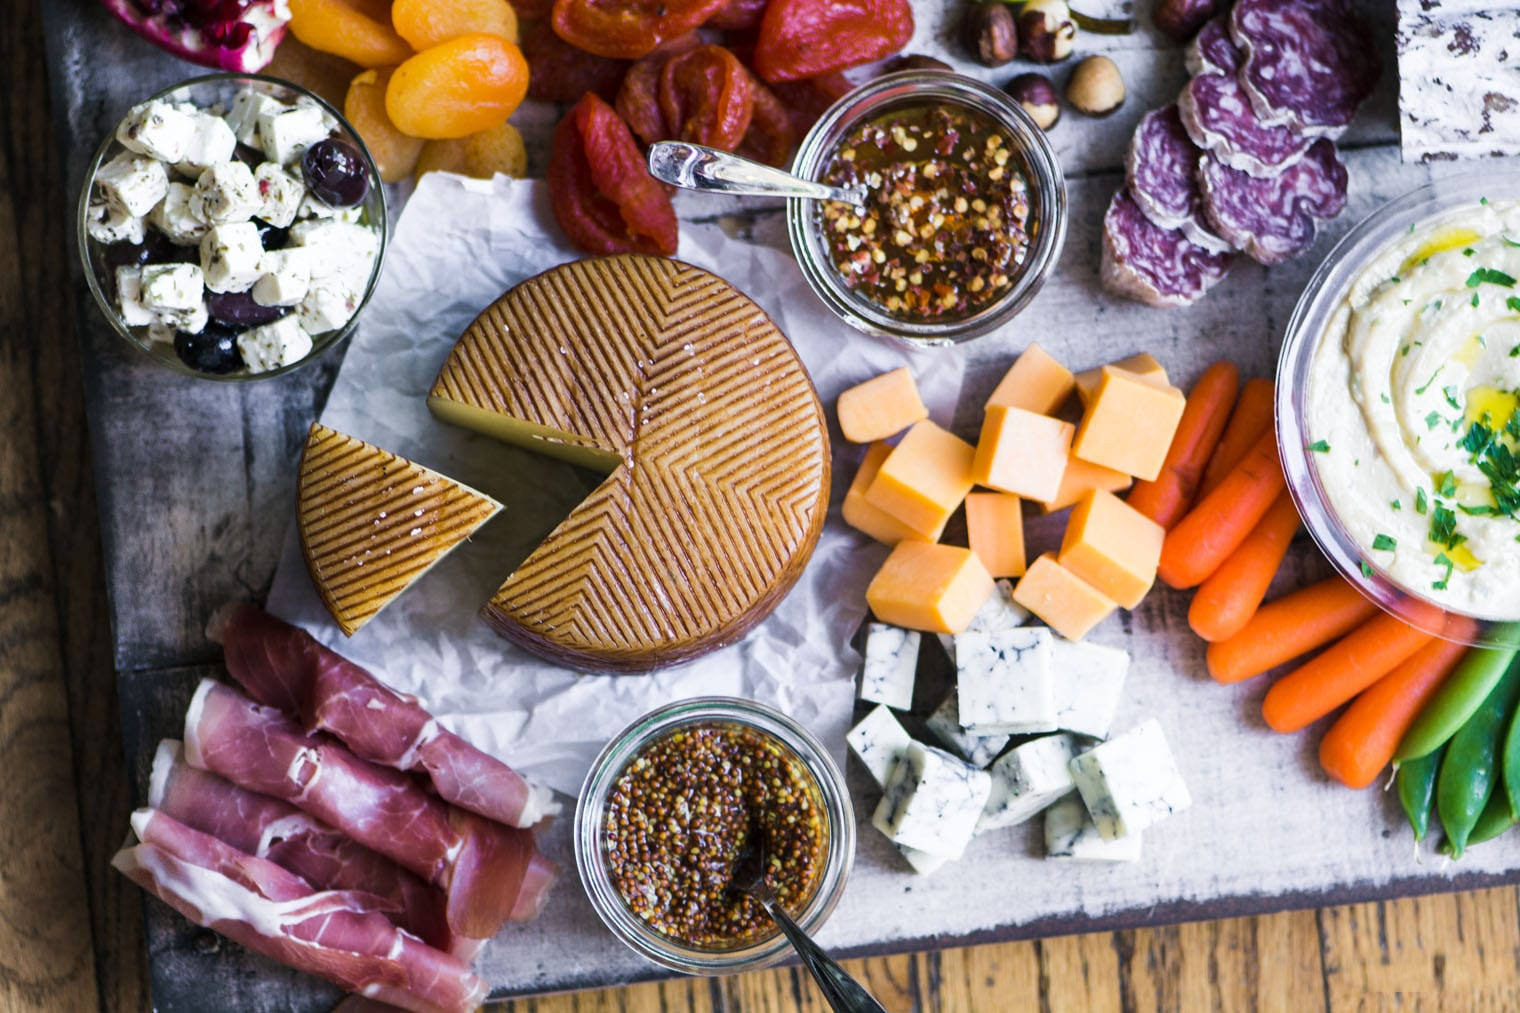 A cheese platter with cheese, meats, veggies, and fruit